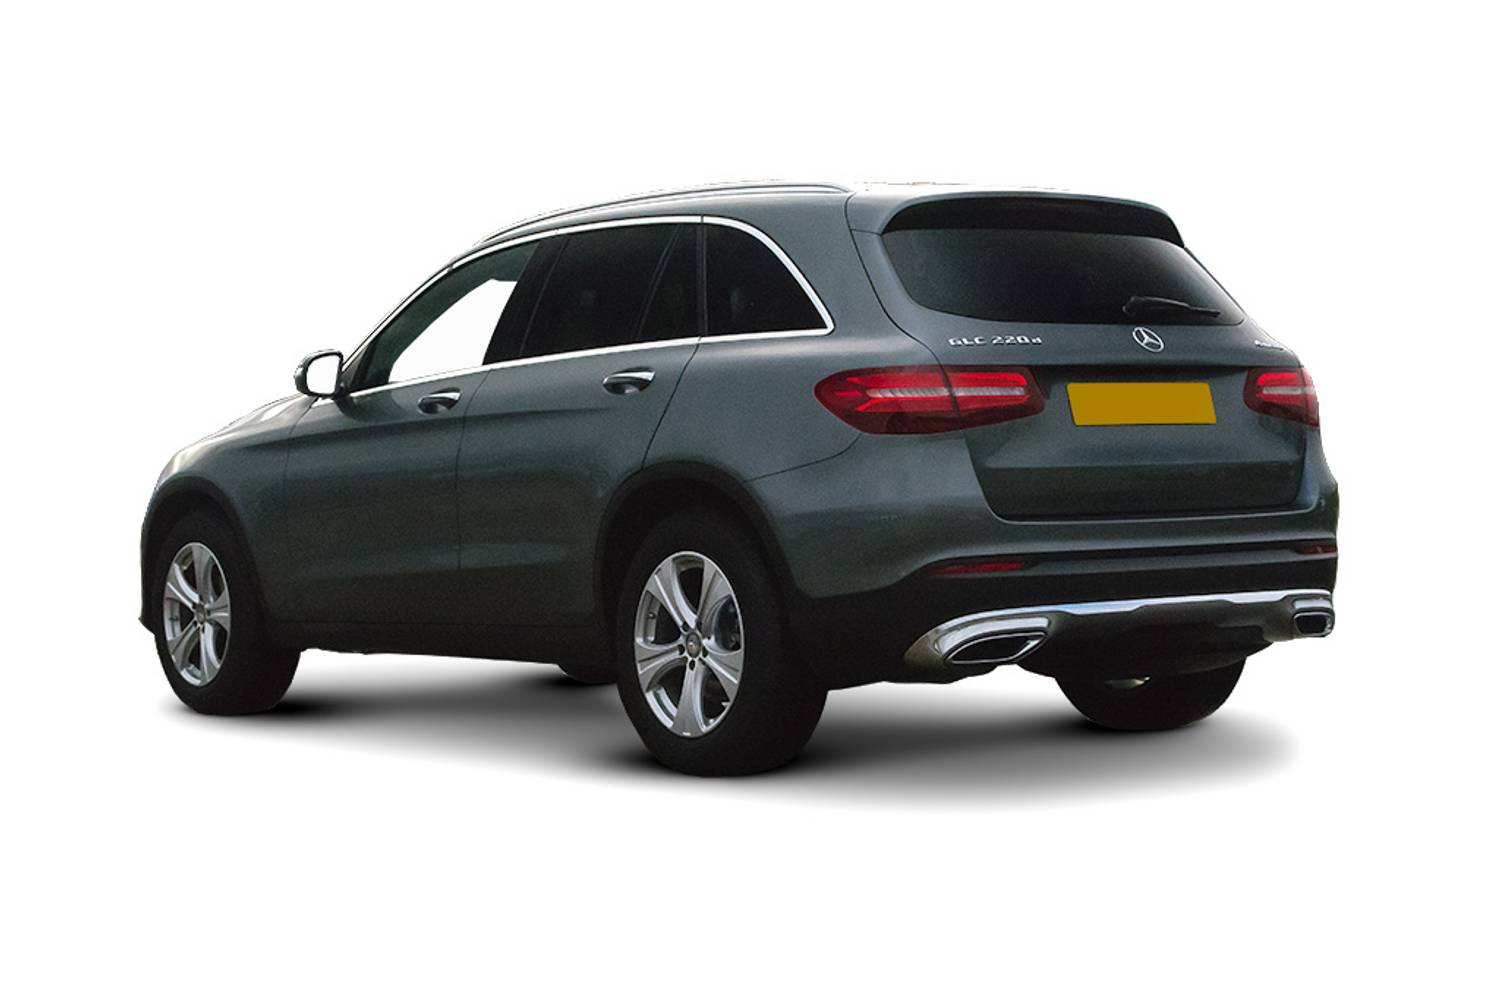 new mercedes benz glc diesel estate glc 220d 4matic amg line prem plus 5 door 9g tronic 2015. Black Bedroom Furniture Sets. Home Design Ideas